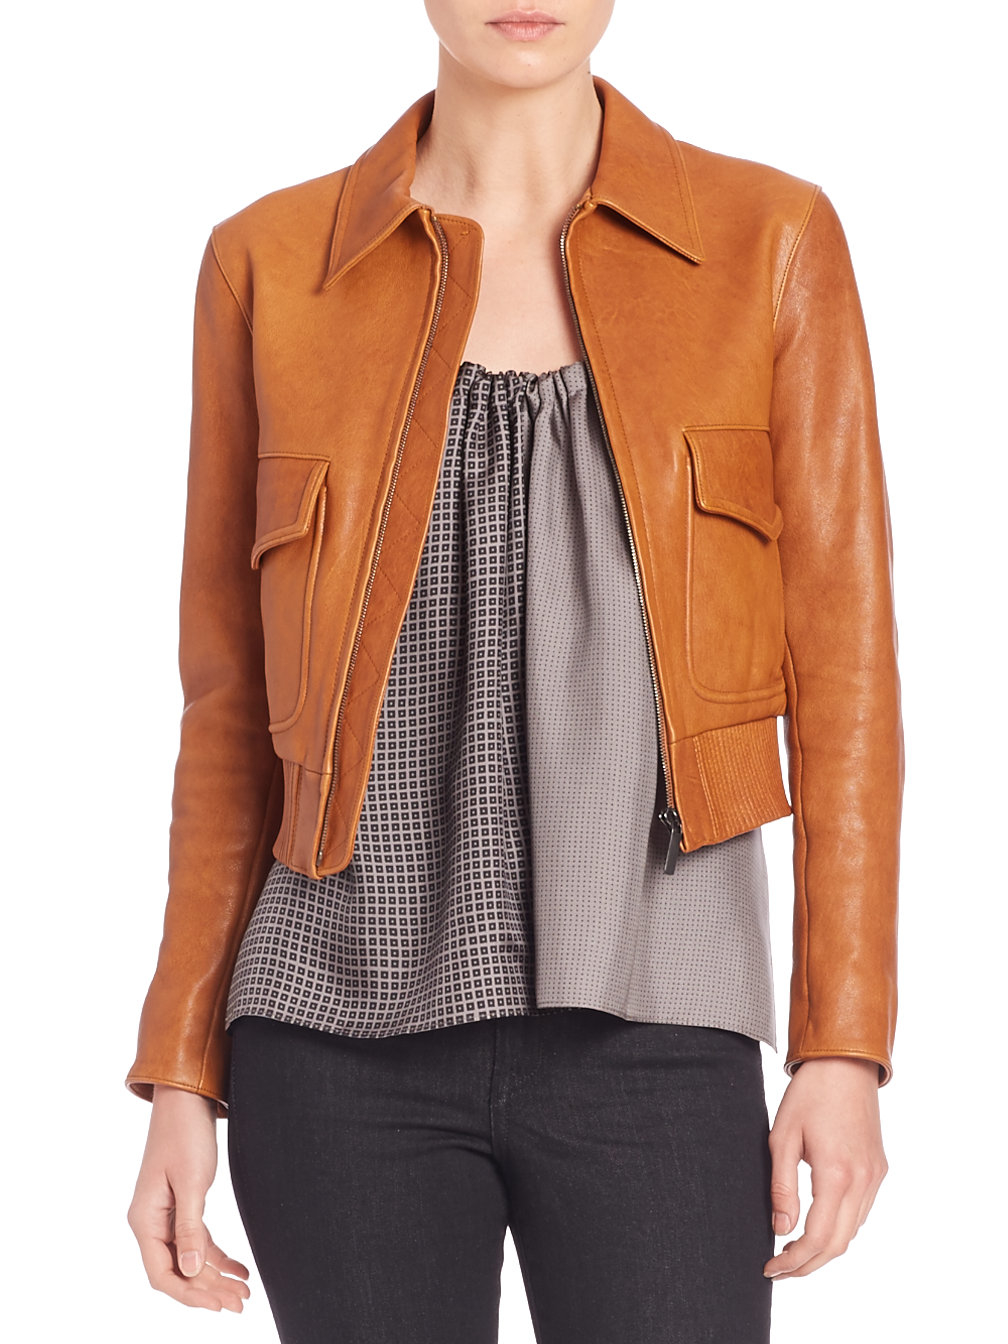 Helmut lang Cropped Leather Jacket in Brown | Lyst